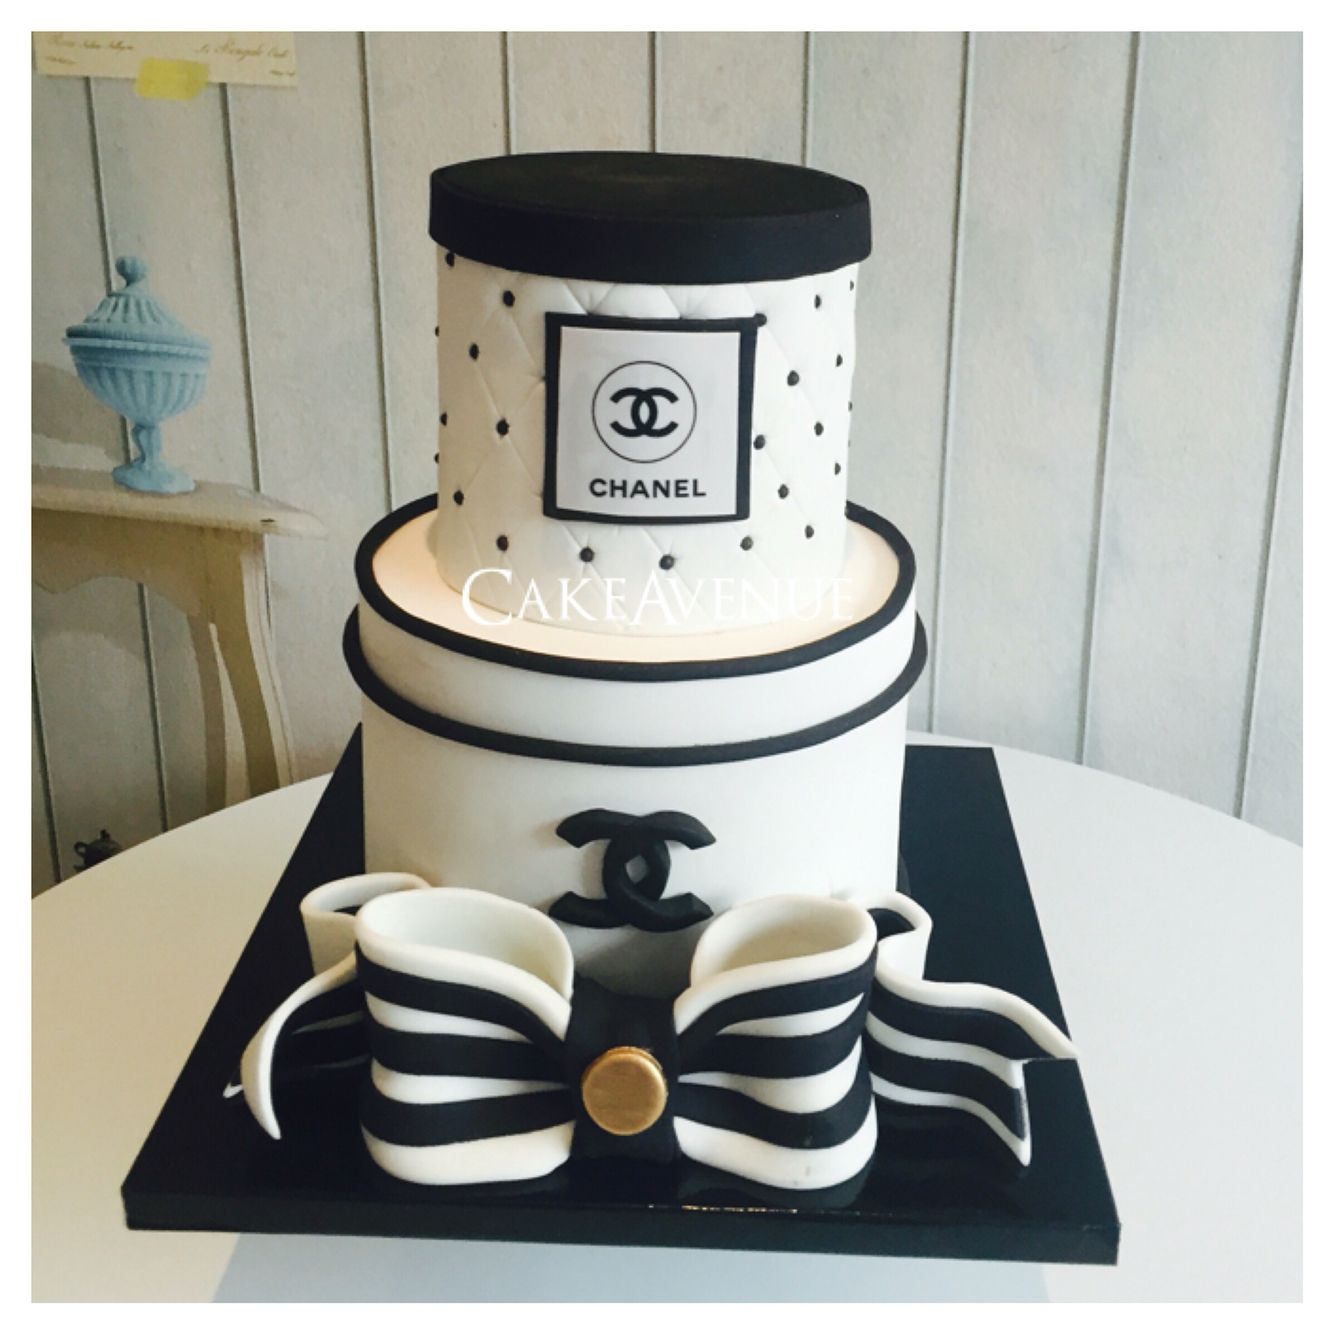 Chanel Cake Ideas: Chanel Fondant Cake Black And White